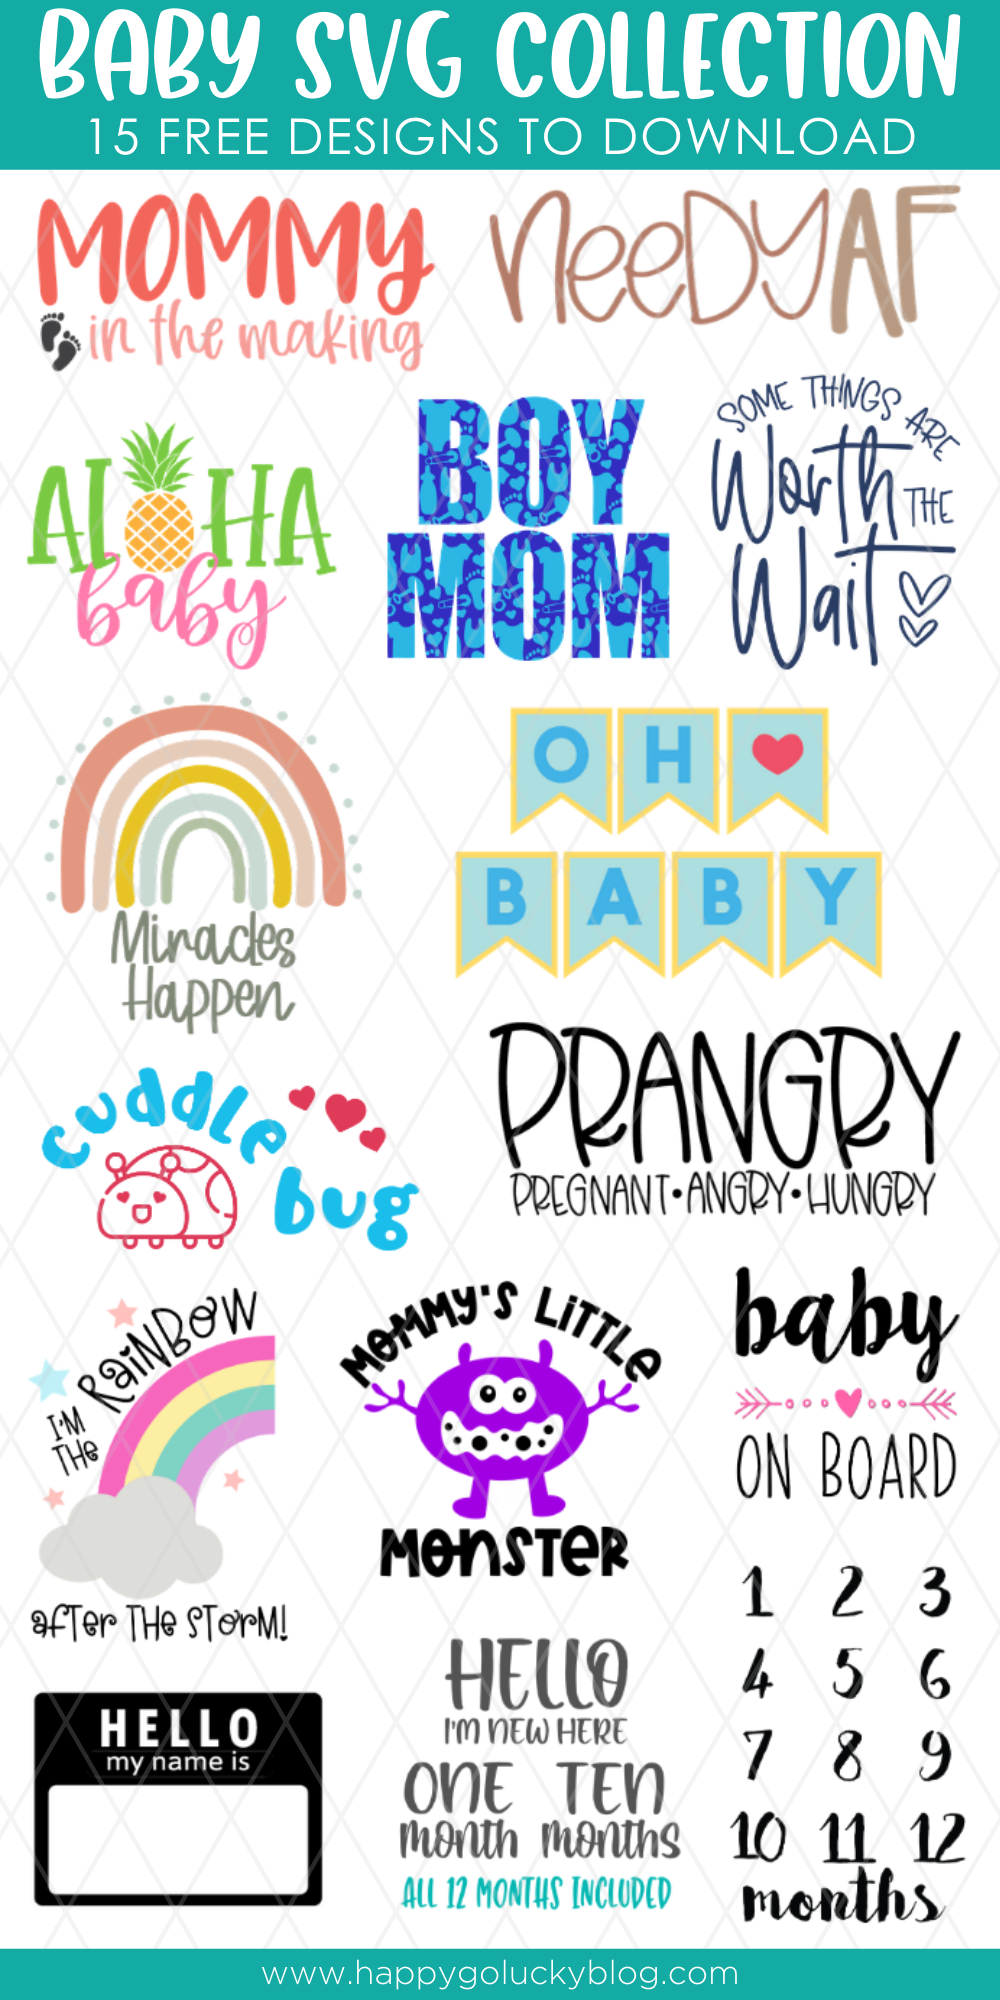 Baby SVG Collection